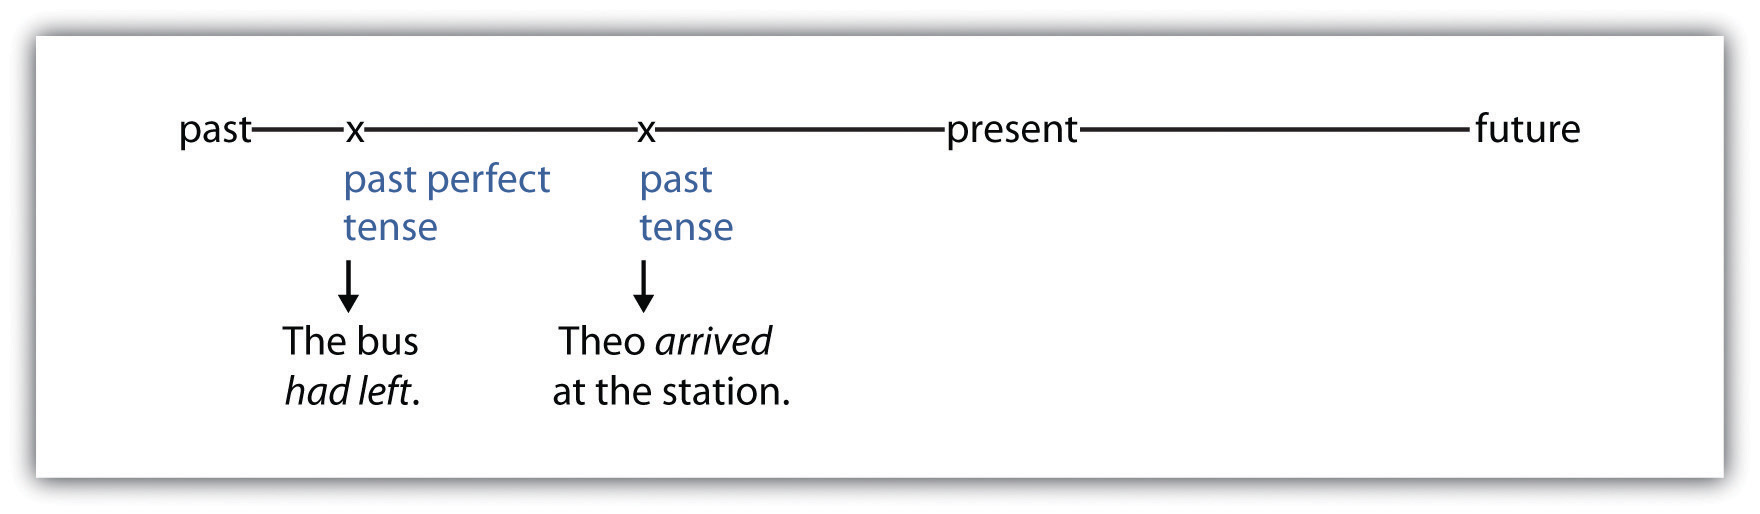 The bus had left (past perfect tense). Theo arrived at the station (past tense).